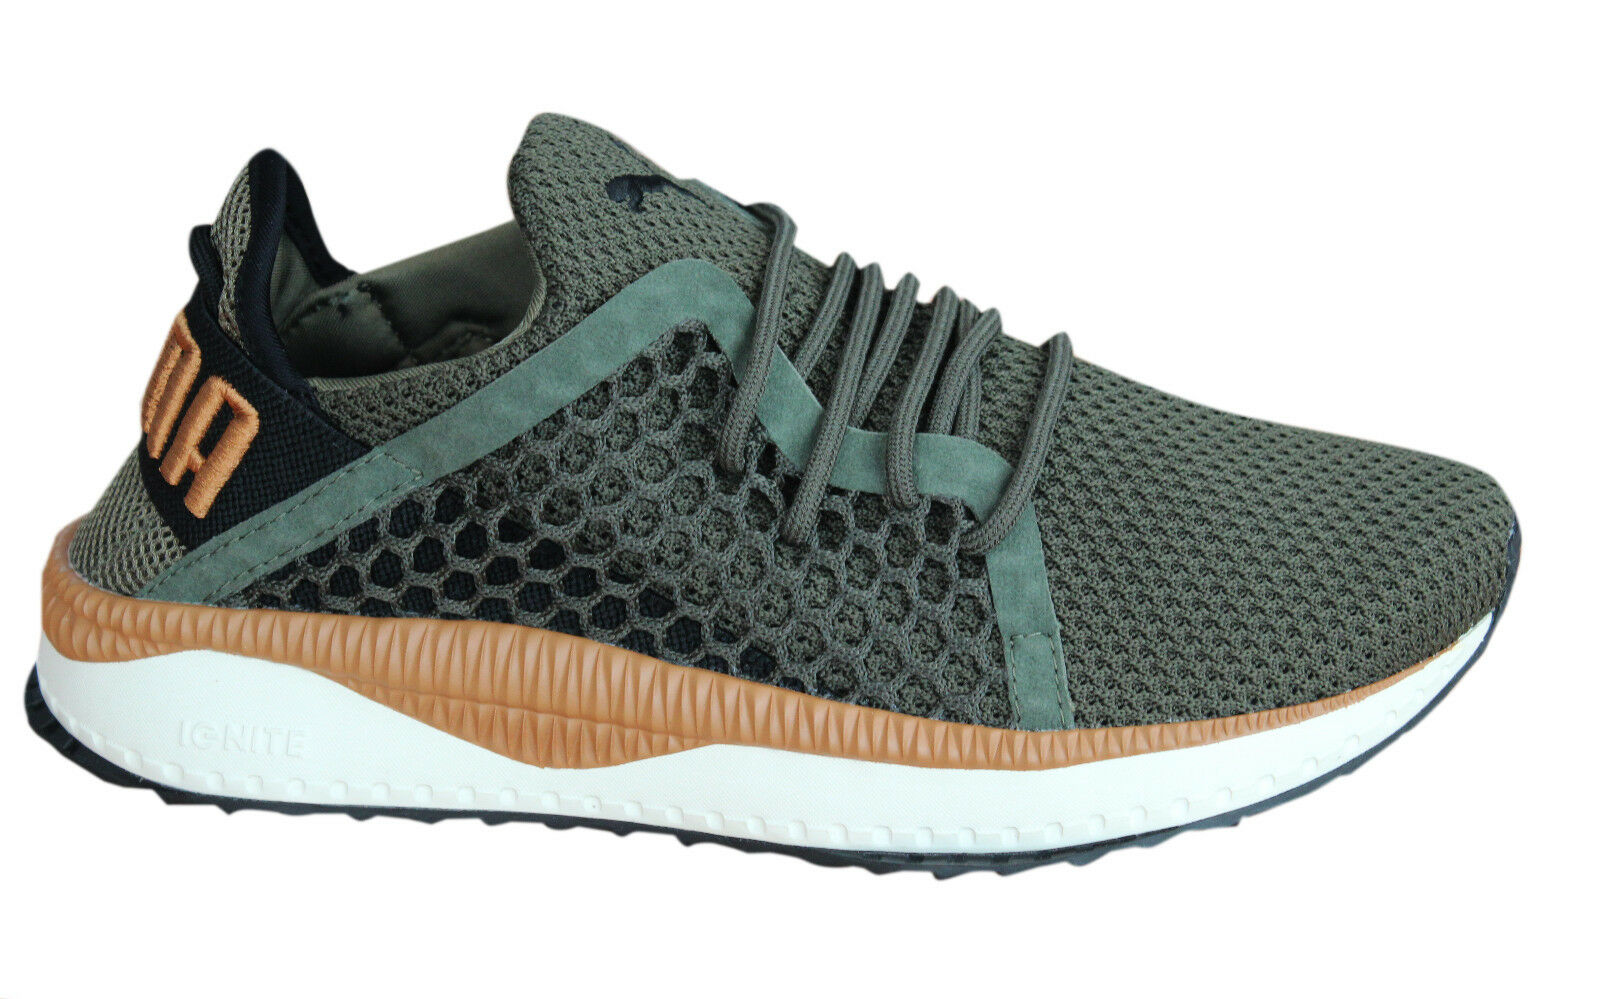 quality design d90b9 70558 Puma Tsugi Netfit Lace Up Olive Night Textile Hommes Trainers Chaussures  364629 07 P6